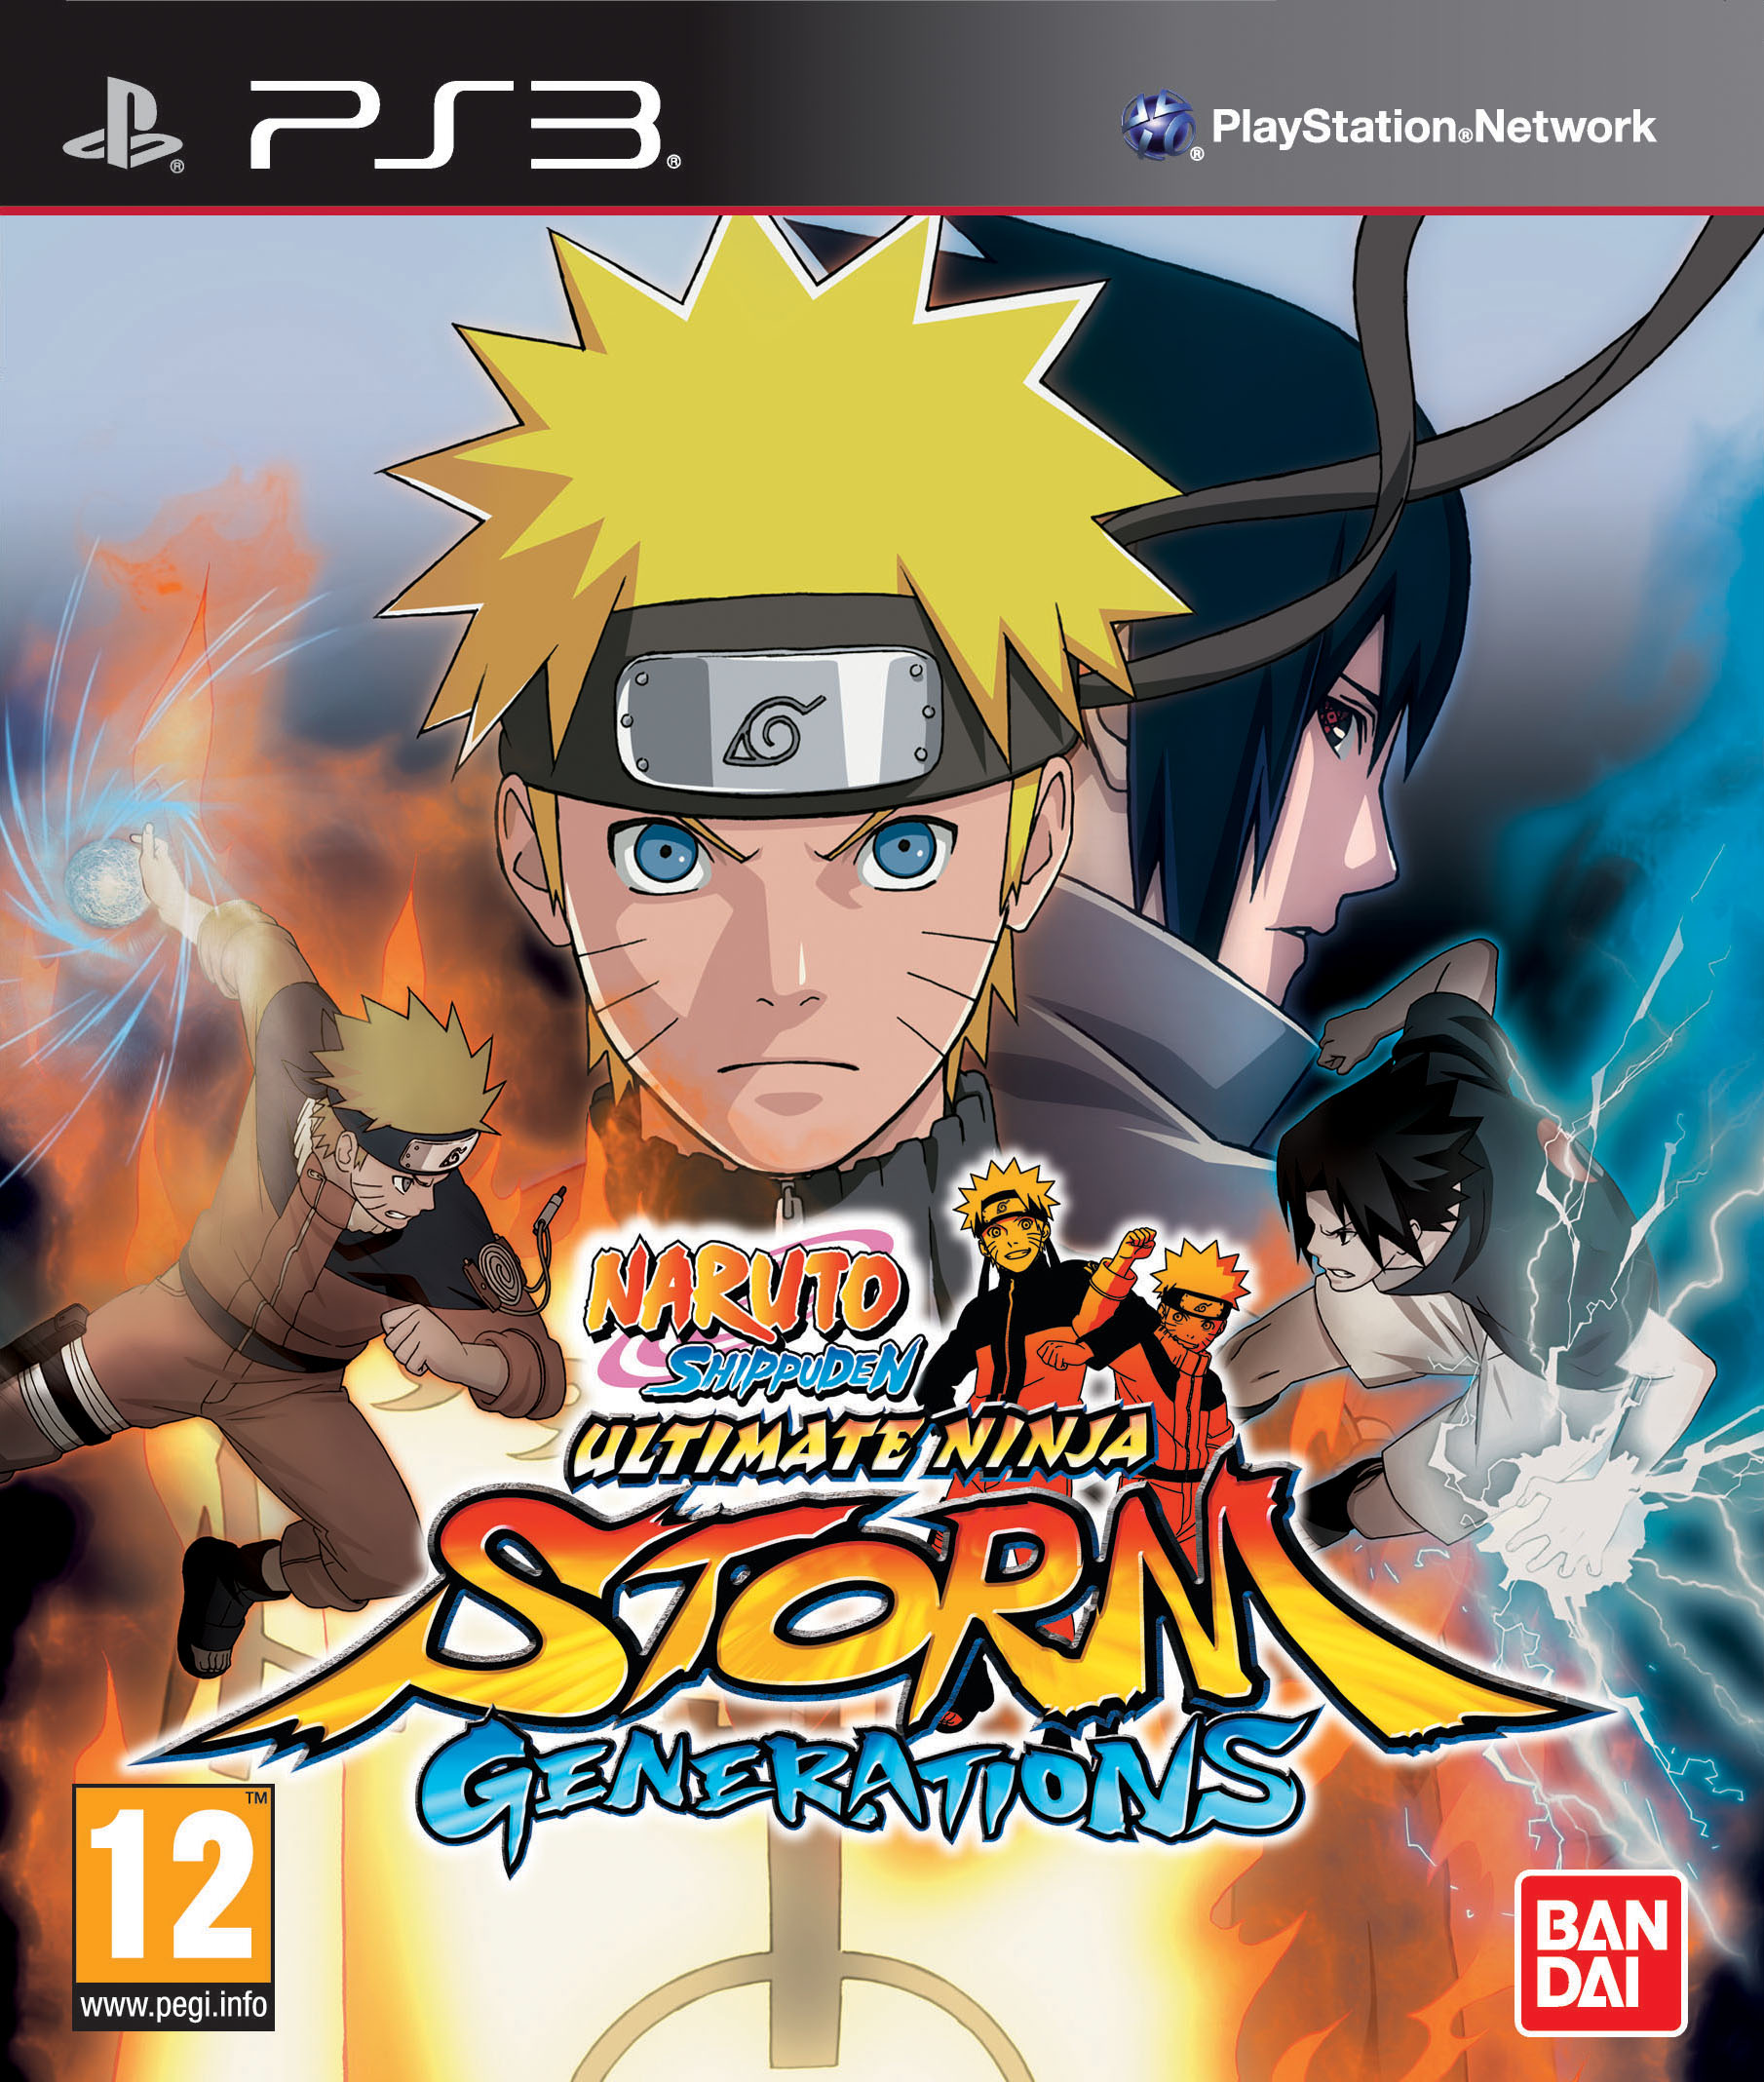 Anime In The Heart Blog Anime Information Naruto Video Games 031 Naruto Shippuden Ultimate Ninja Storm Generations Full Info